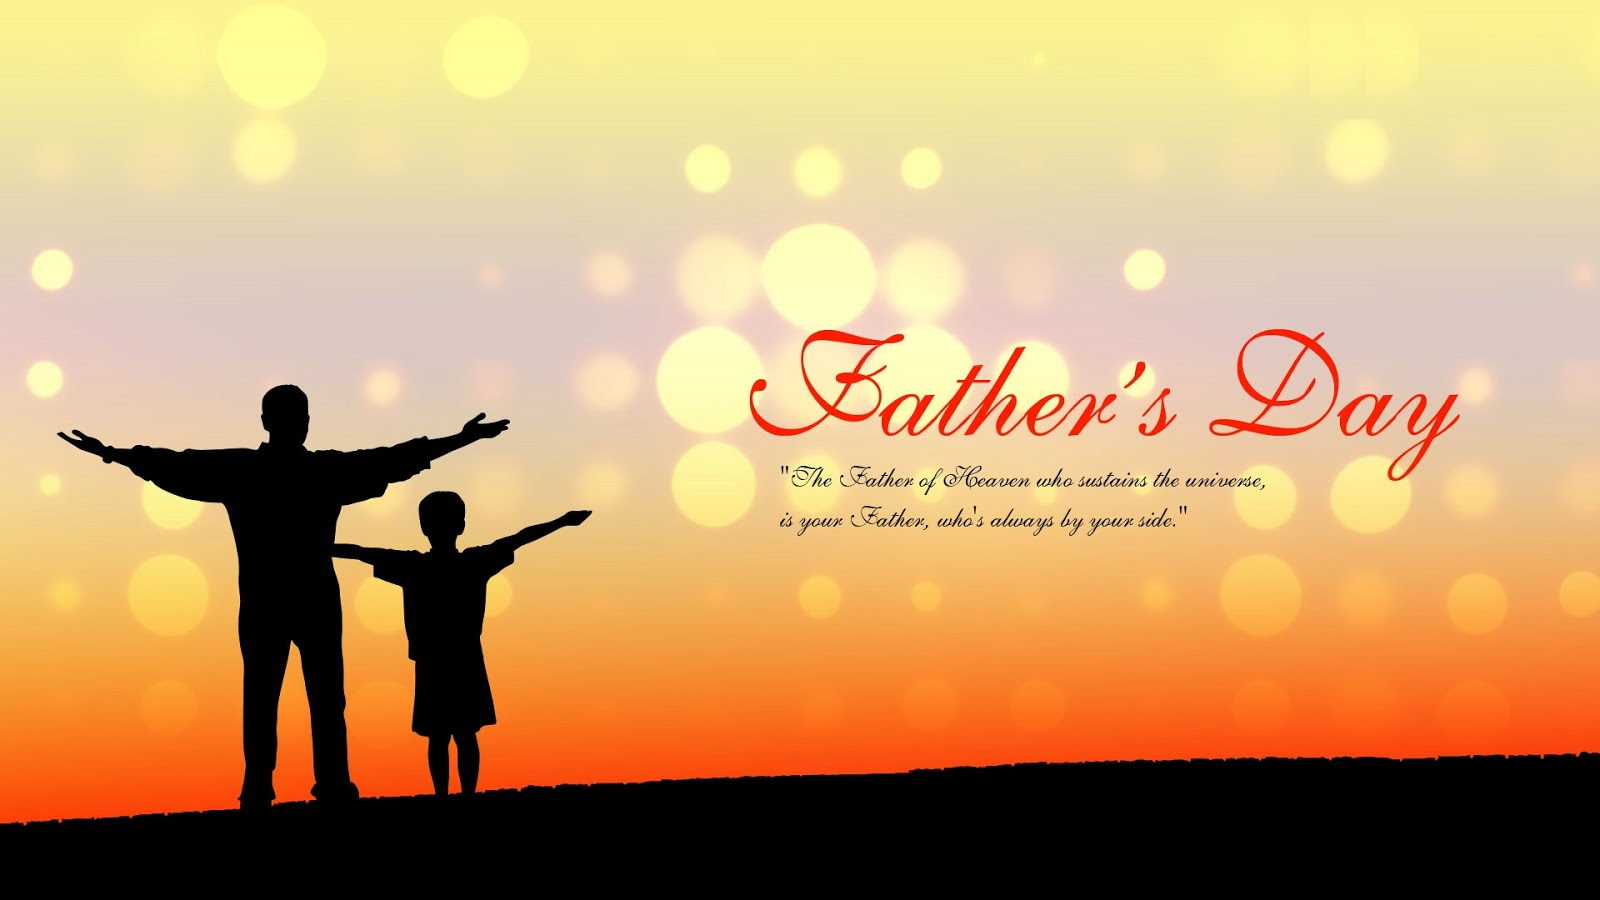 Happy fathers day quotes messages sms greetings images wallpapers 1600x900